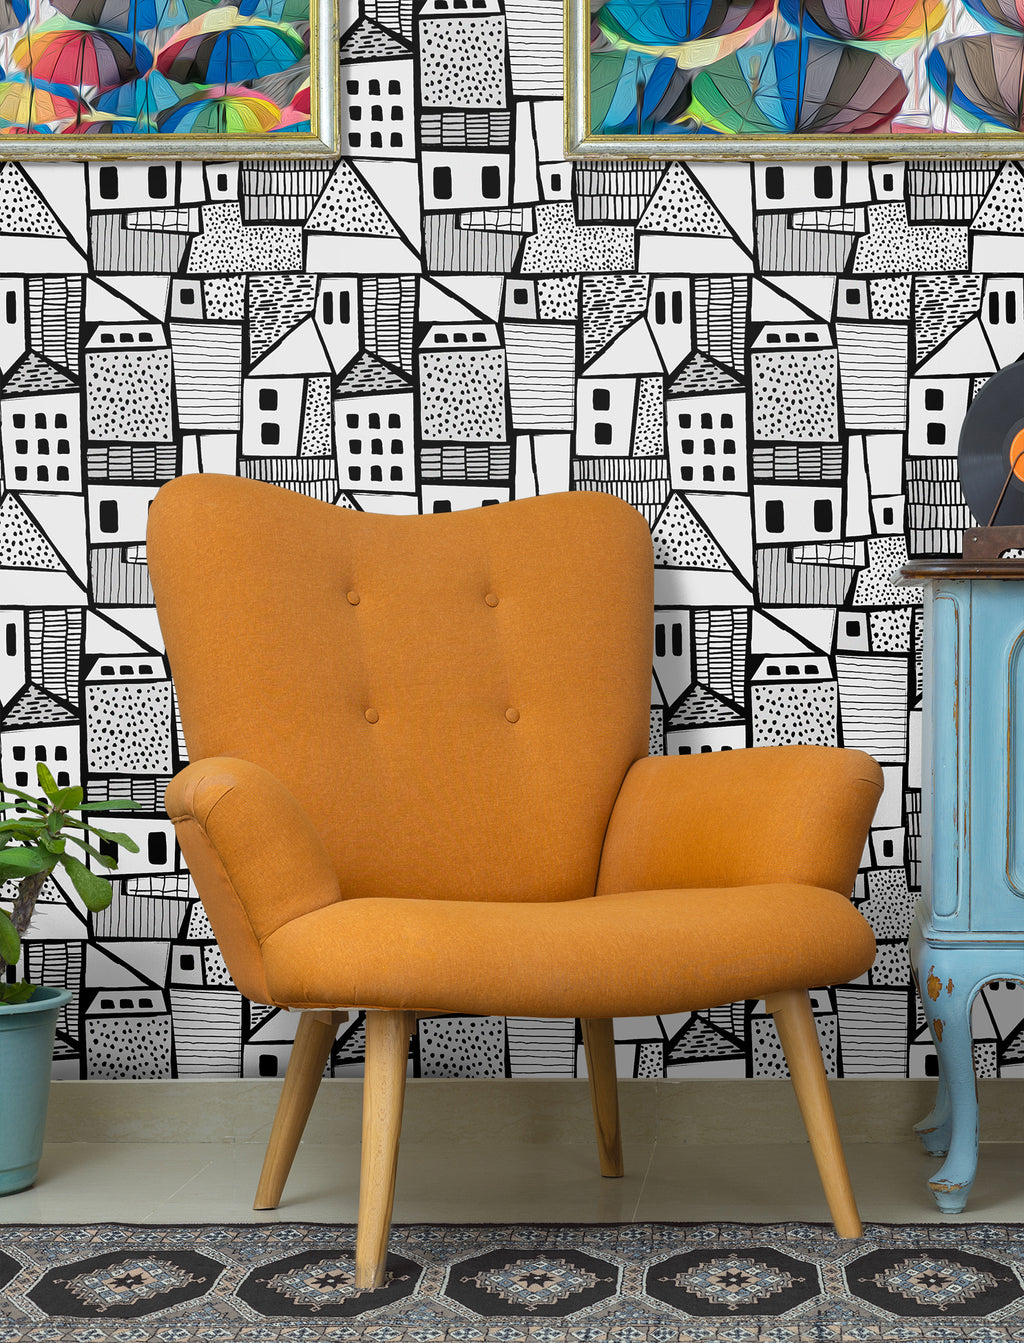 Black and white tightly compact village scene removable wallpaper behind mid century modern orange chair and blue credenza